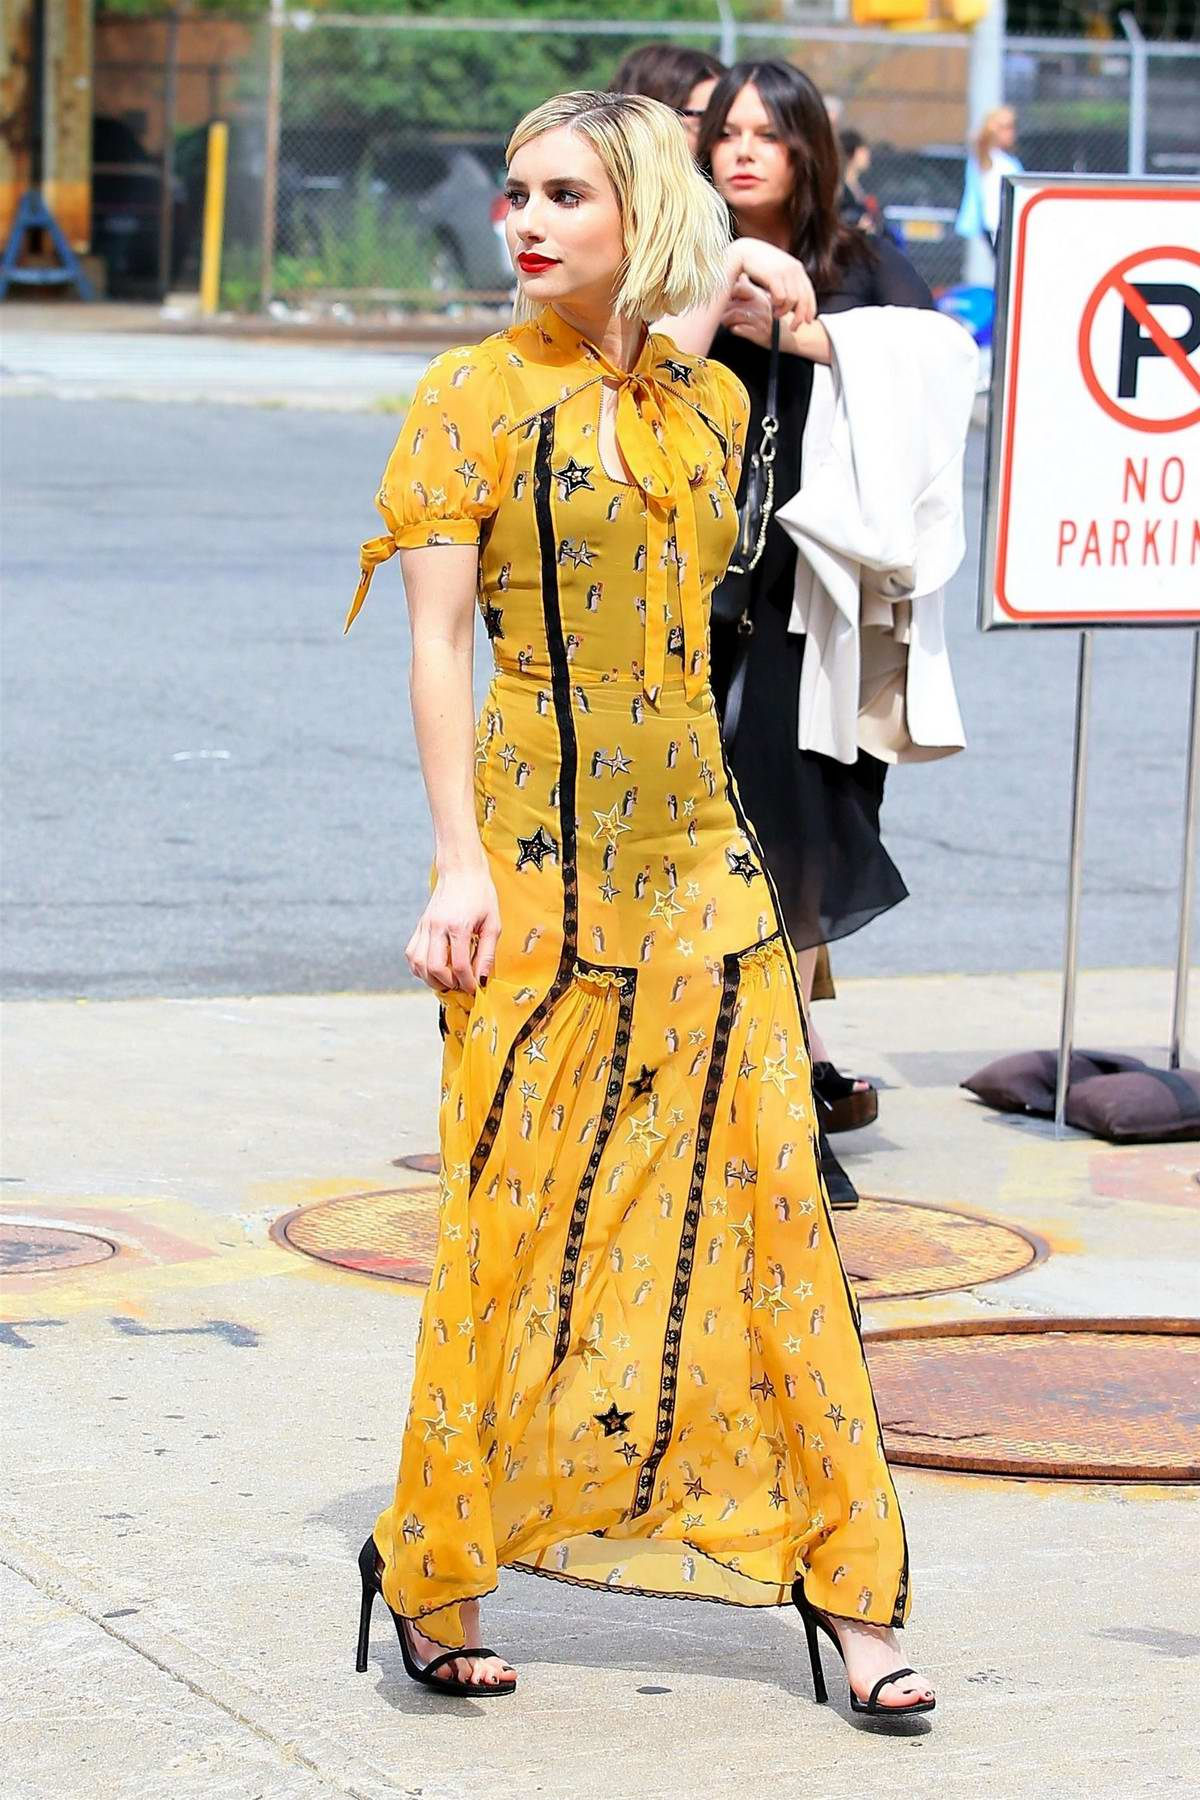 Emma Roberts In A Yellow Dress Attends The Coach Fashion Show In New York City 120917 7